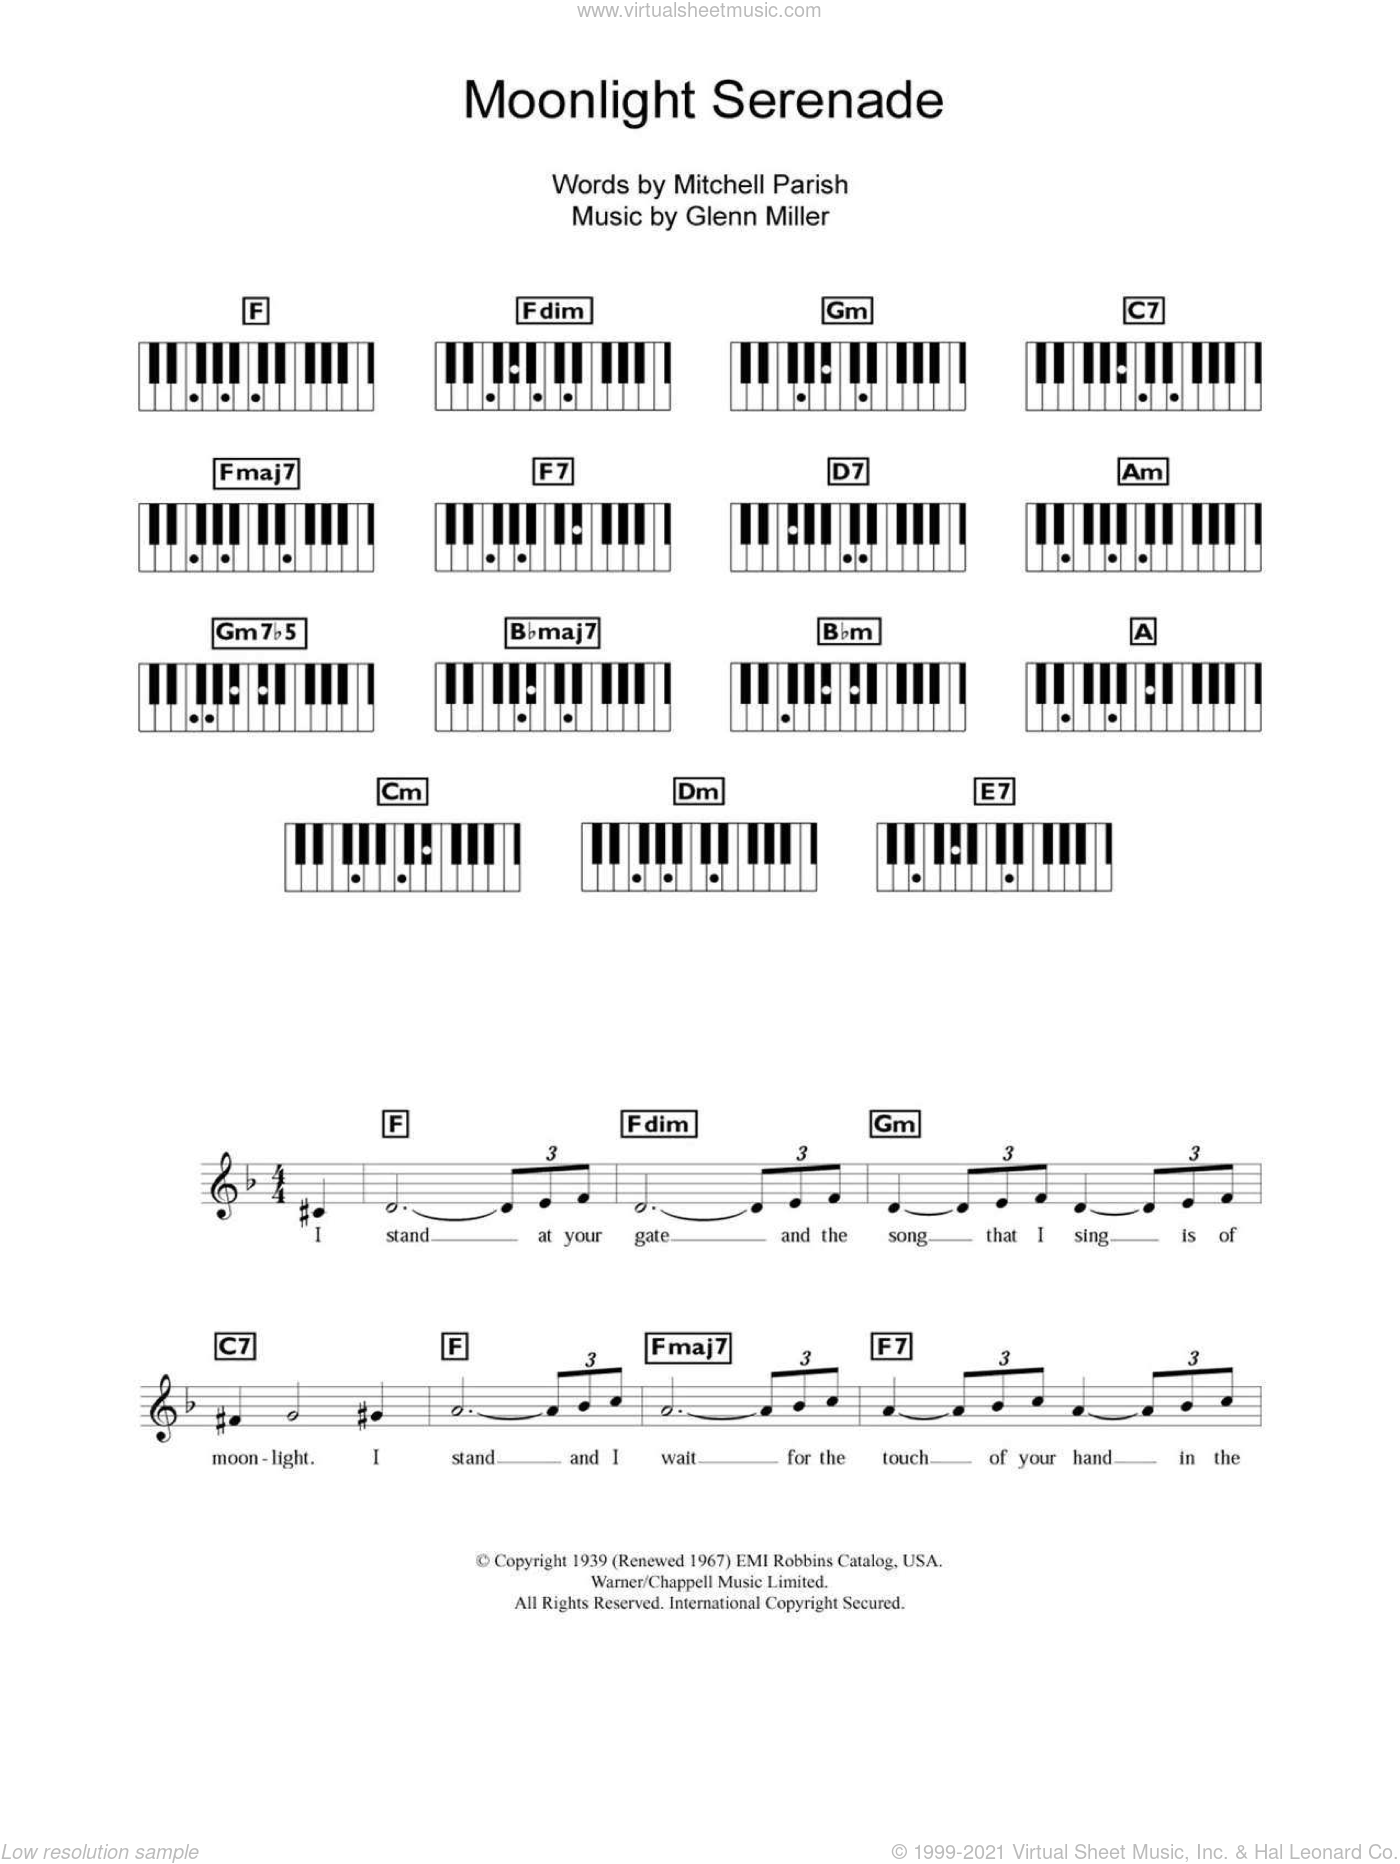 Moonlight Serenade sheet music for piano solo (chords, lyrics, melody) by Mitchell Parish